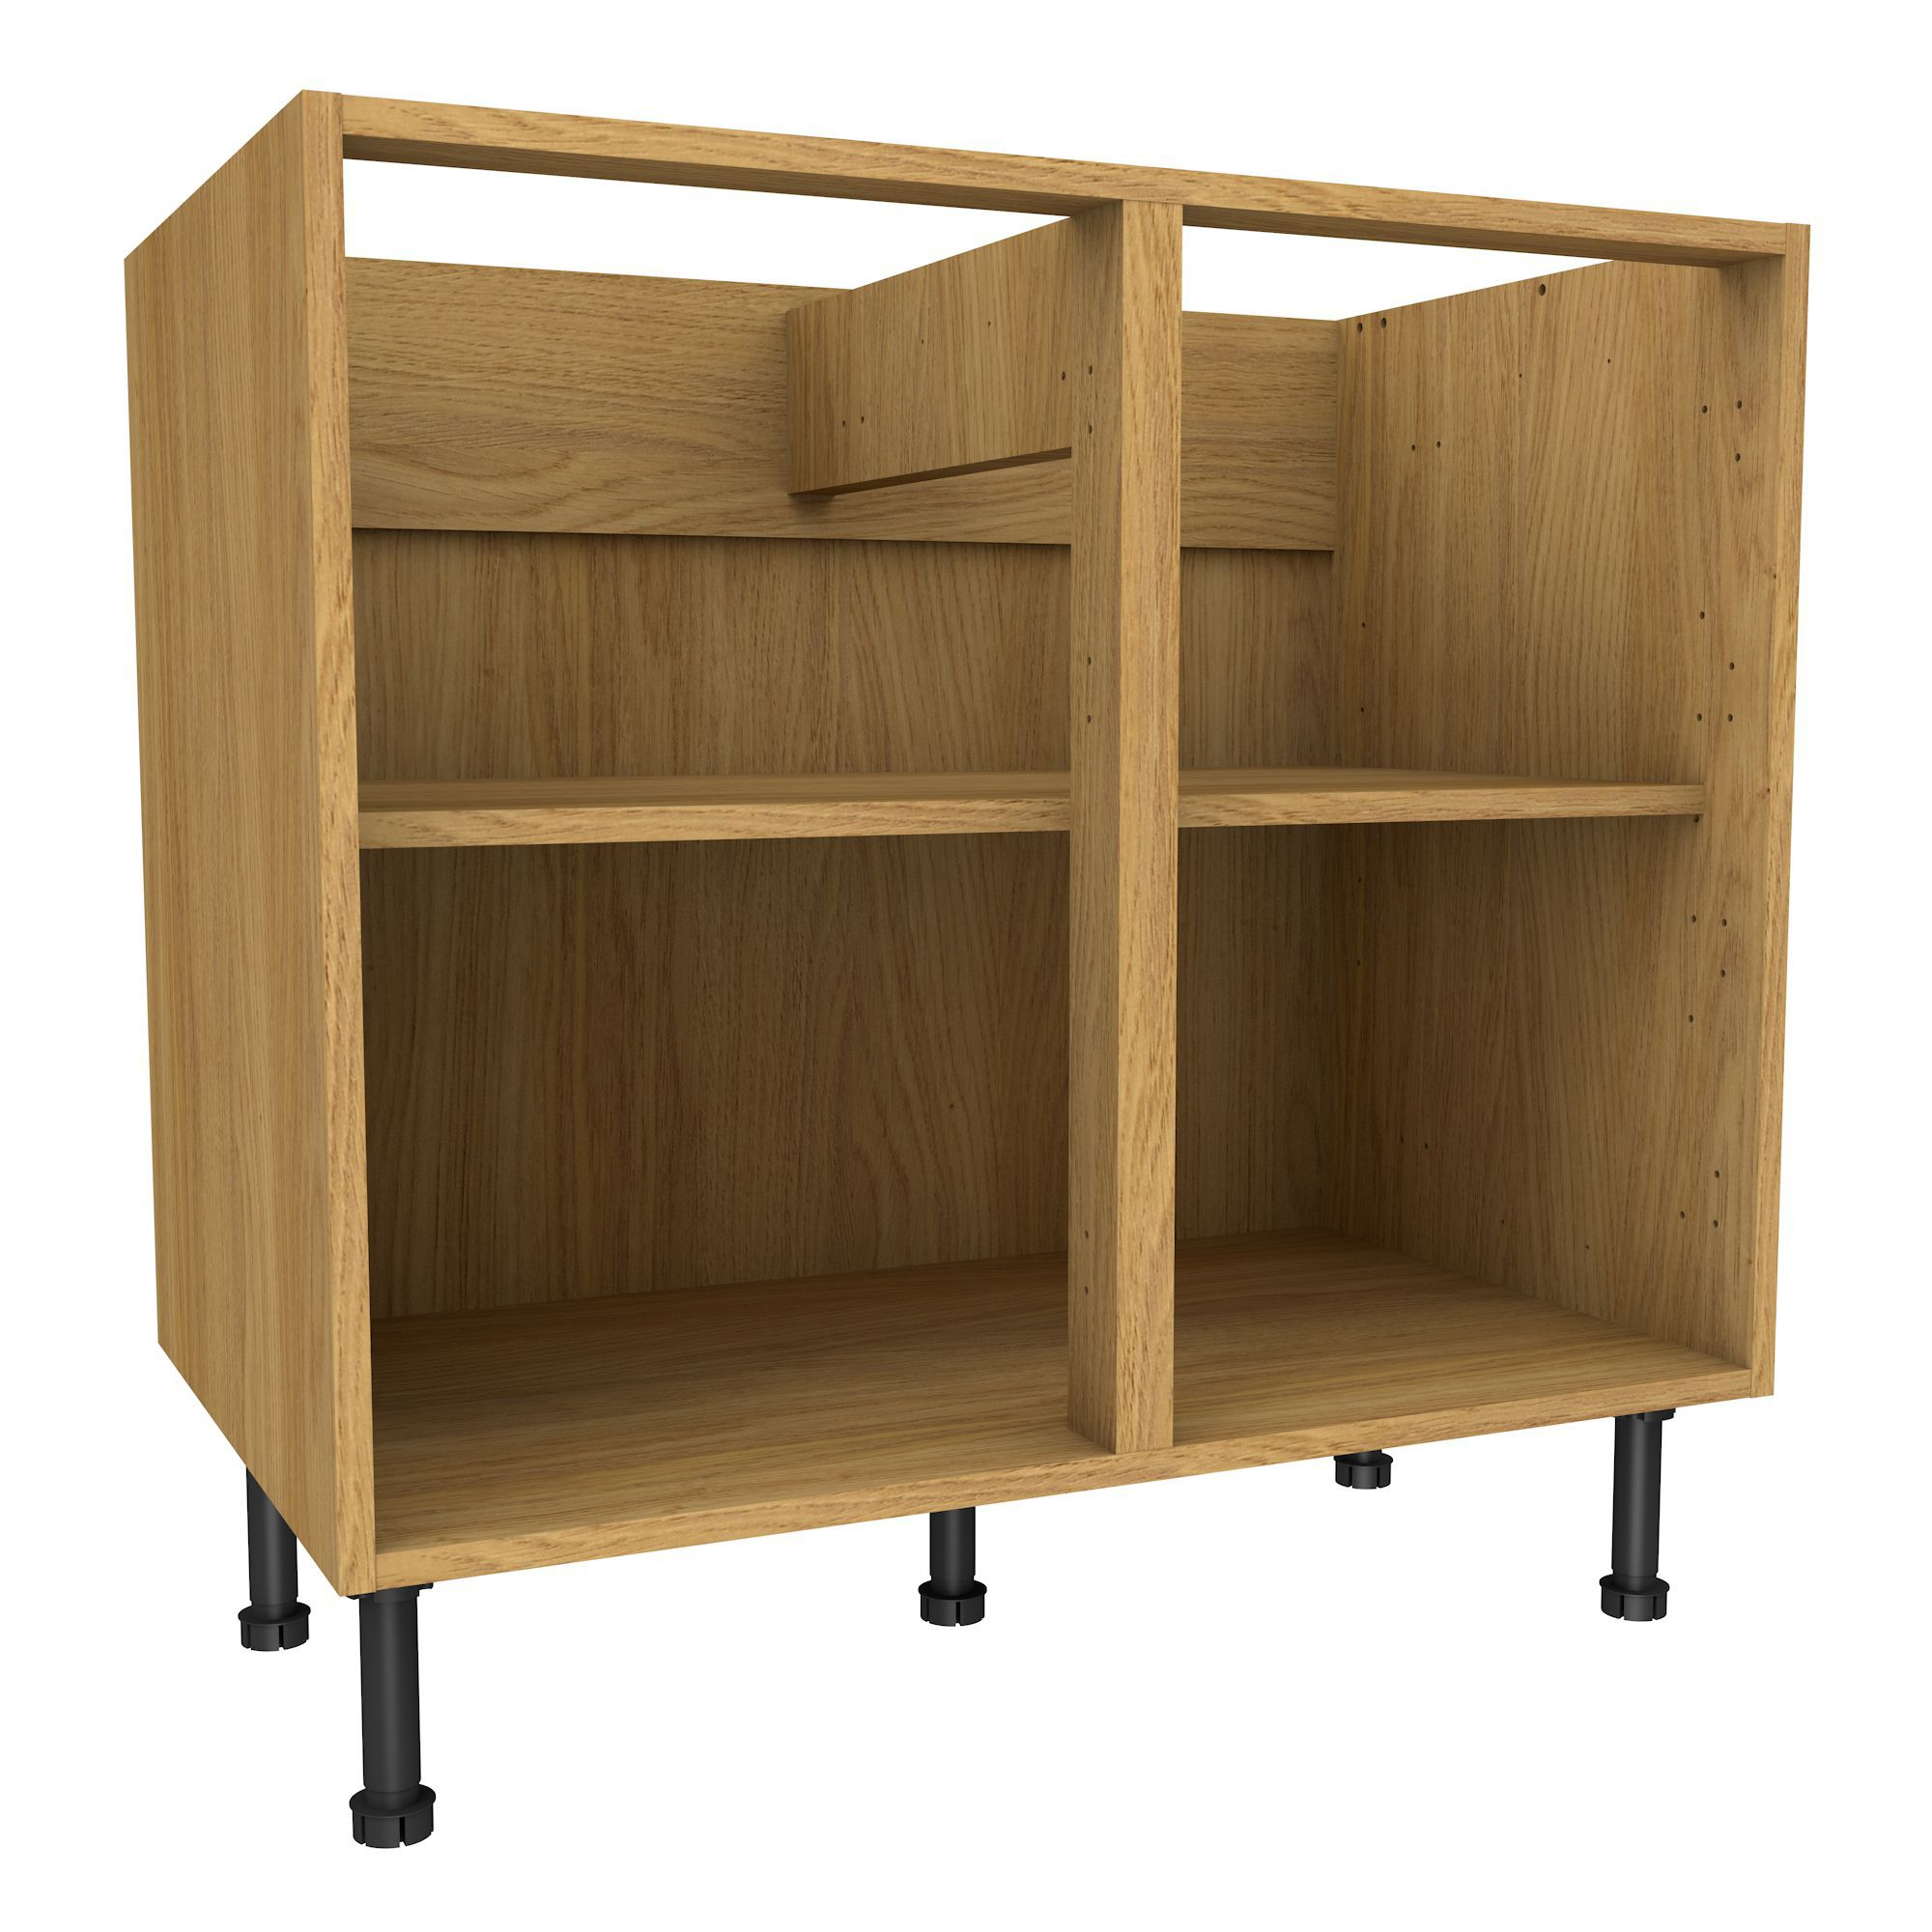 Oak Effect Kitchen Cabinets: Cooke & Lewis Oak Effect Standard Base Cabinet (W)900mm